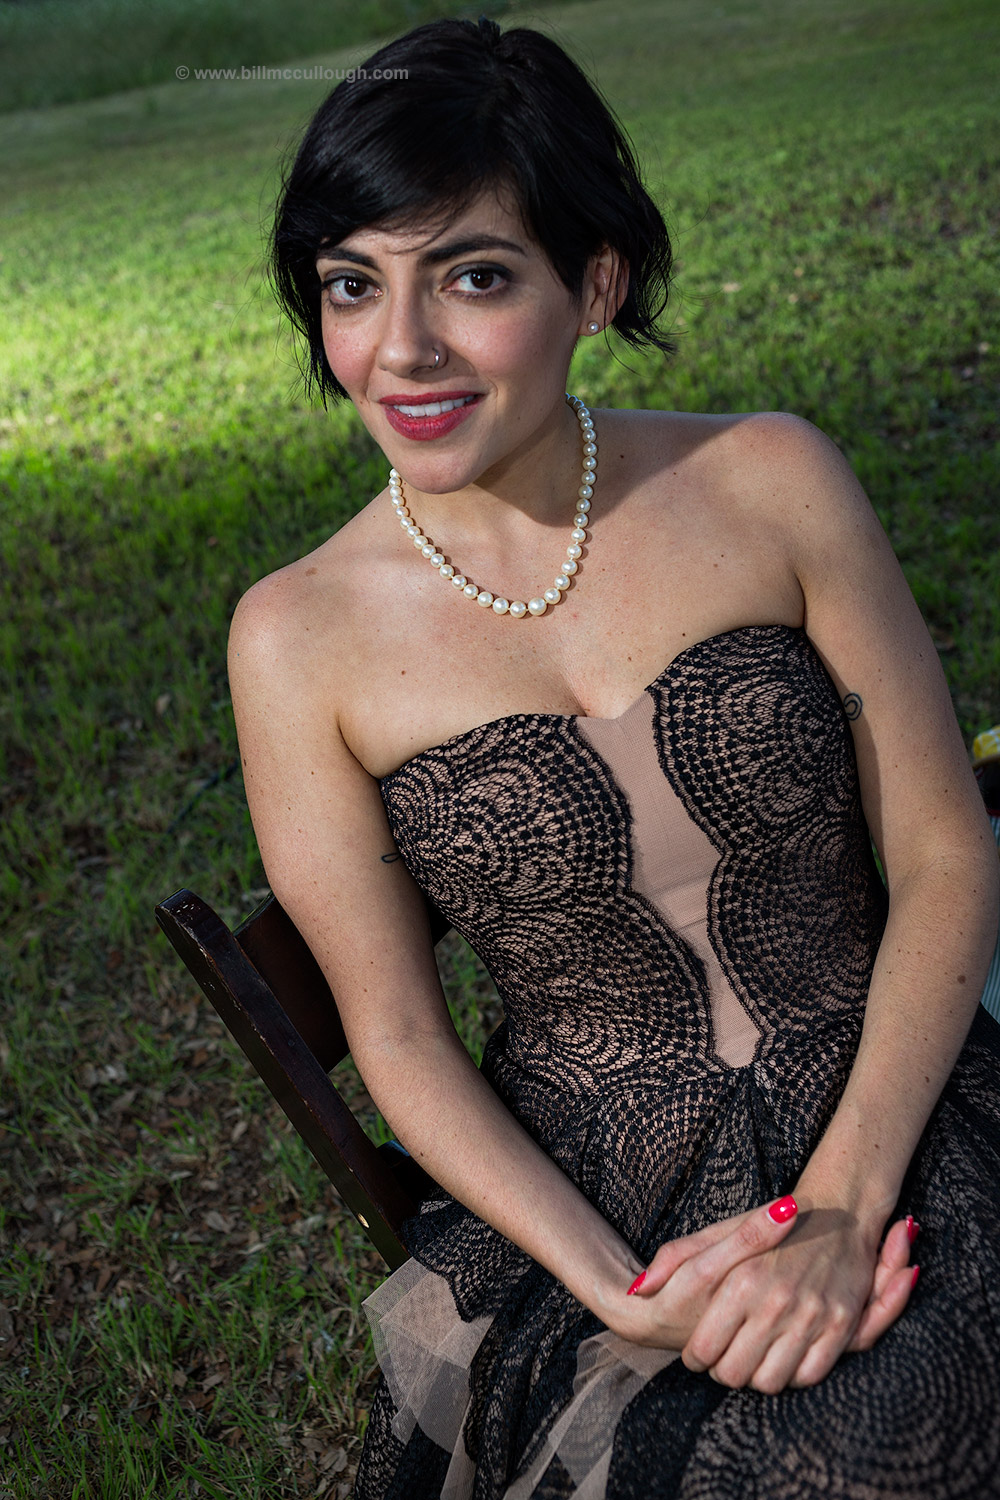 austin-backyard-wedding-150502-1840-20.jpg